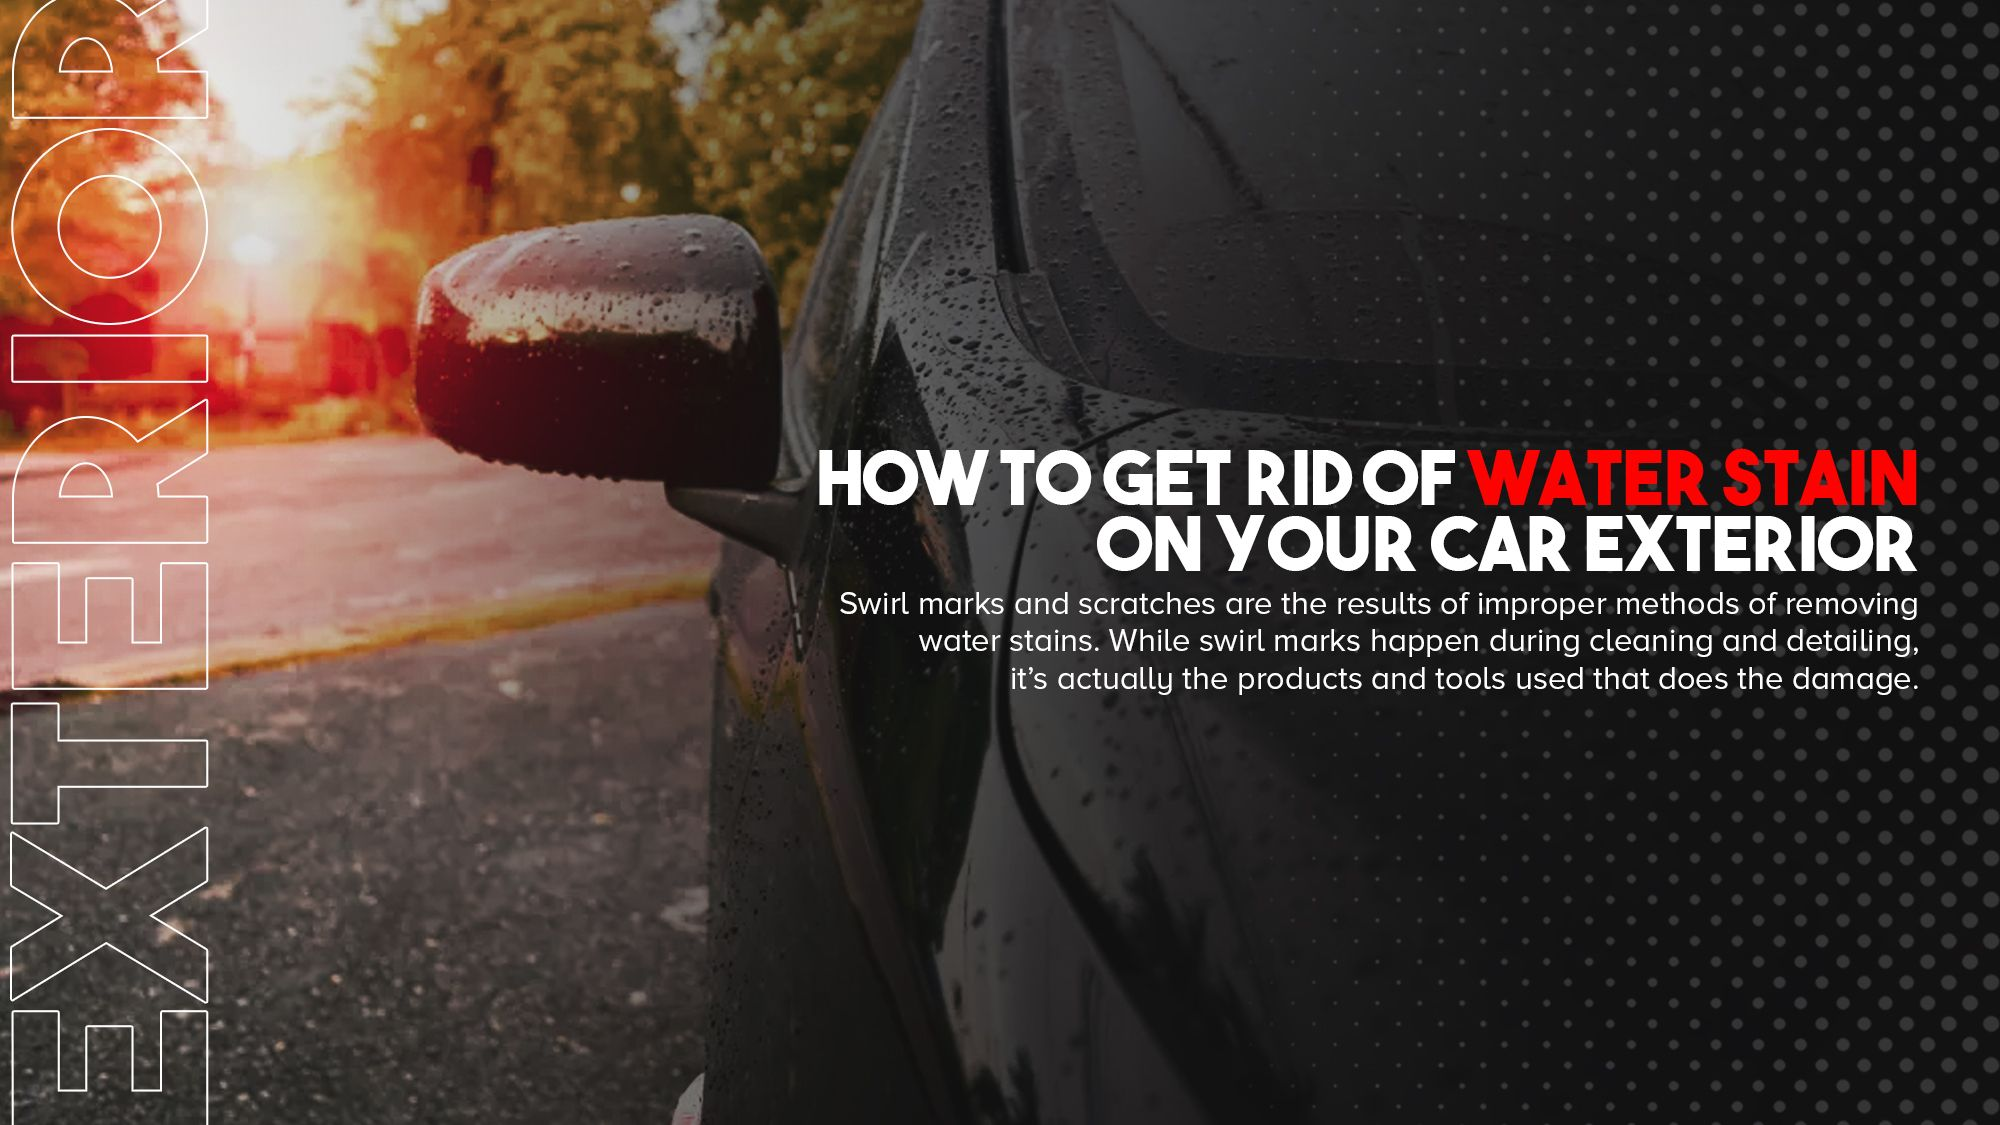 How to get rid of water stain on your car exterior